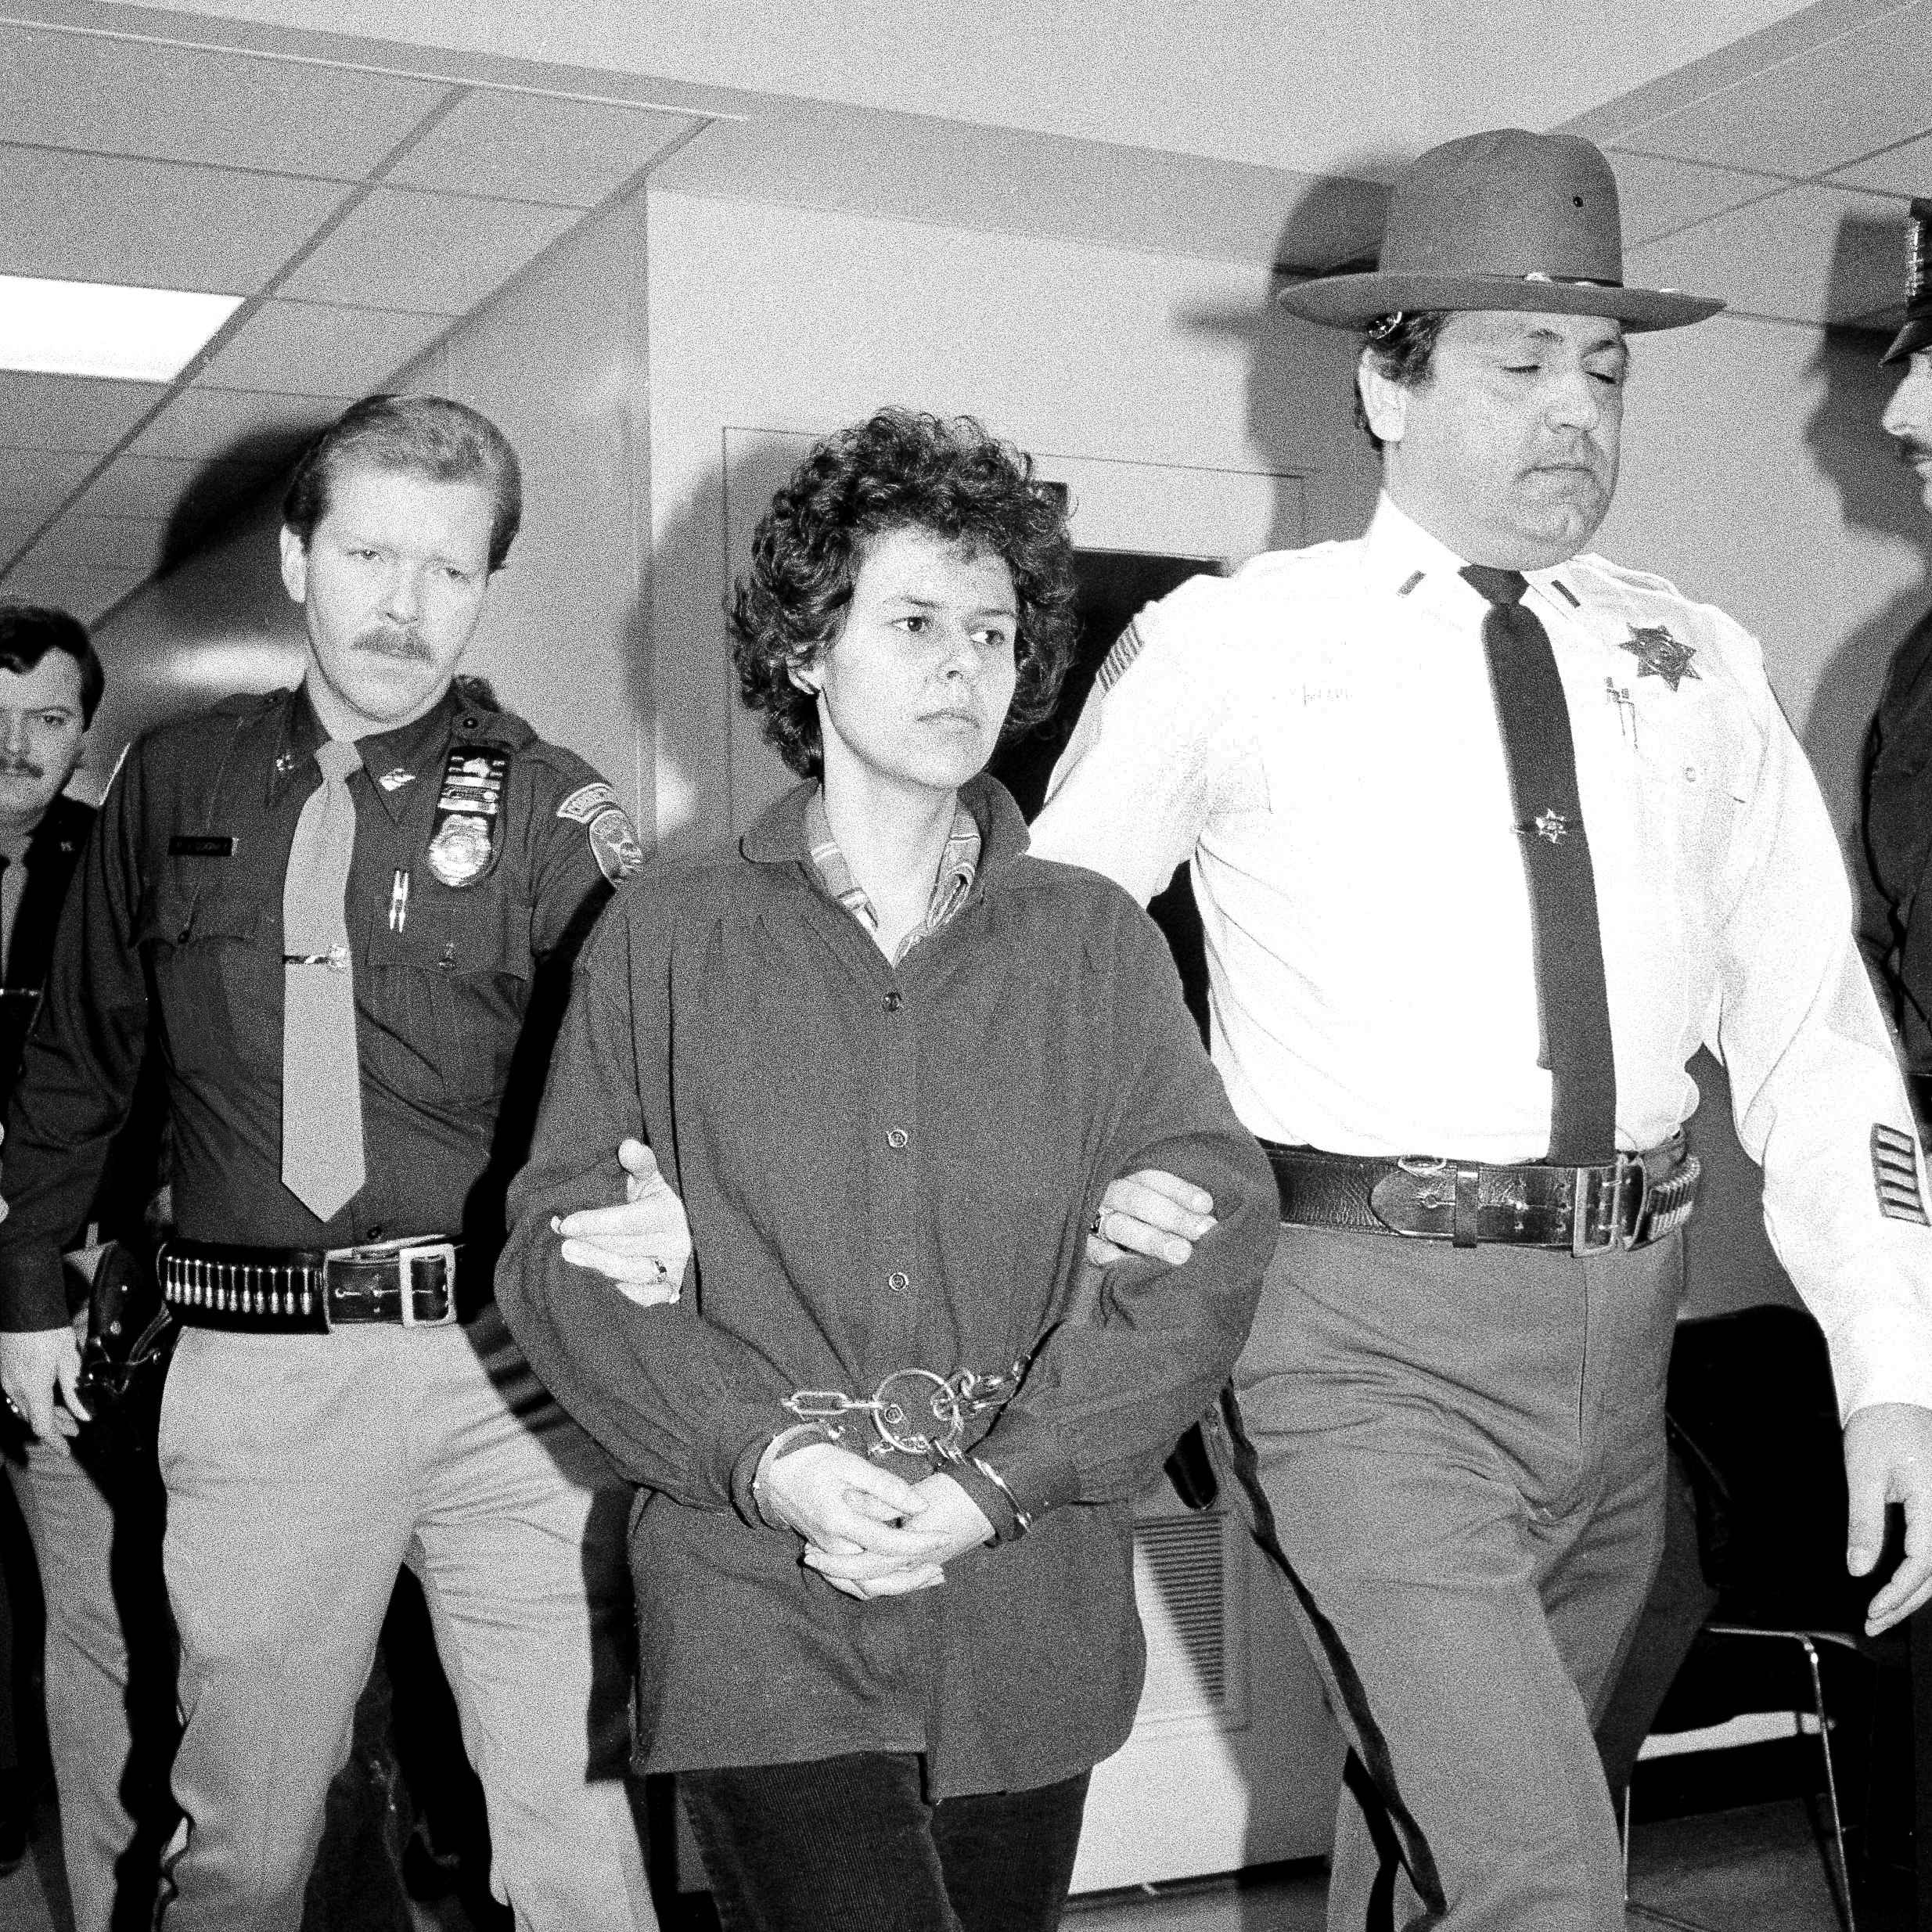 Brinks robbery: Judith Clark, redemption and parole reform